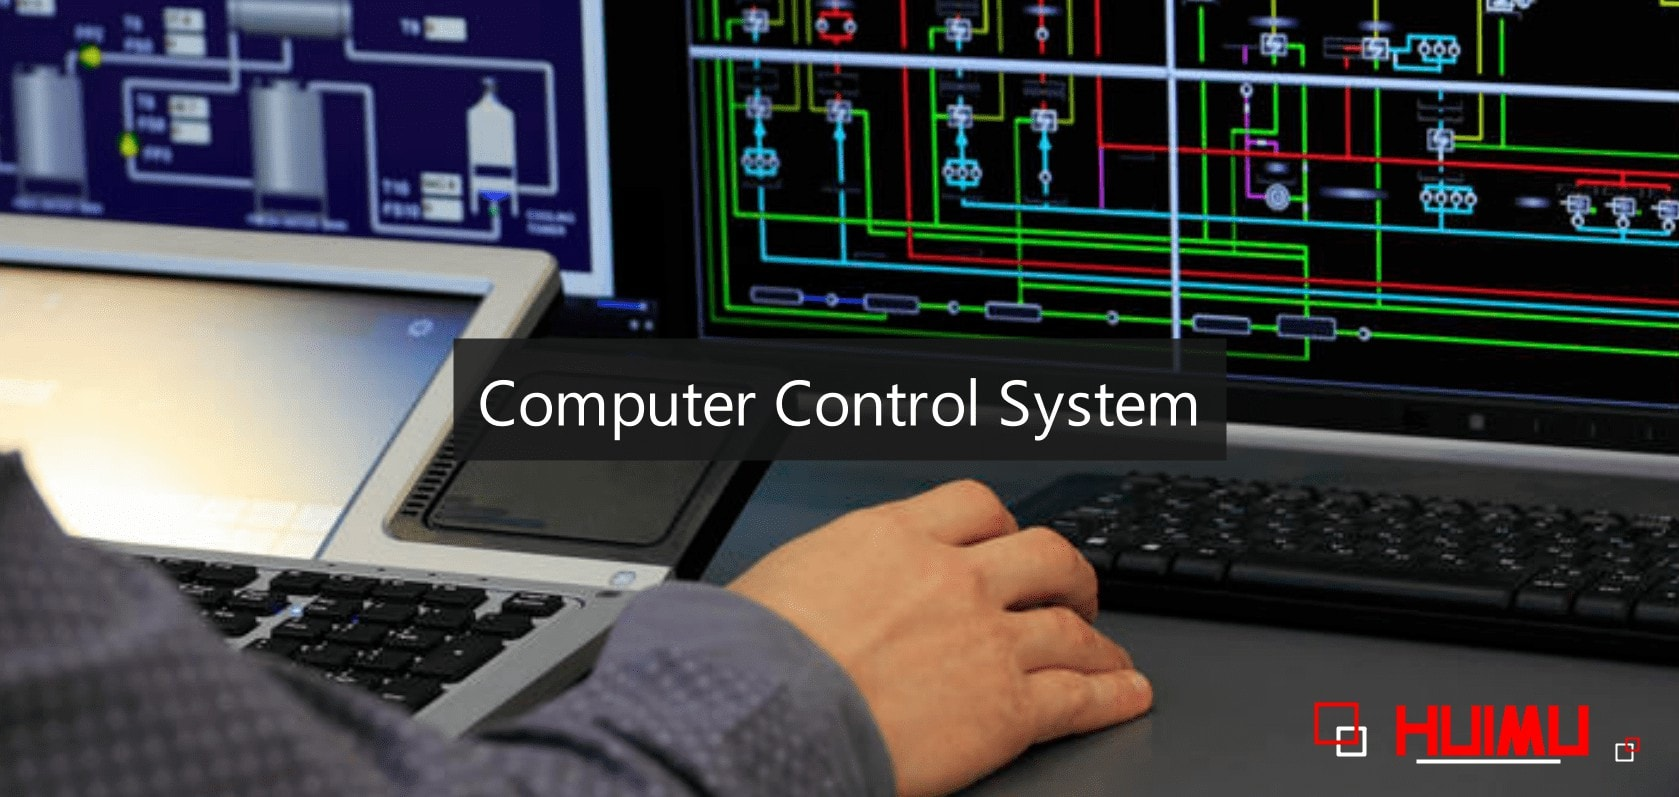 Computer Control System